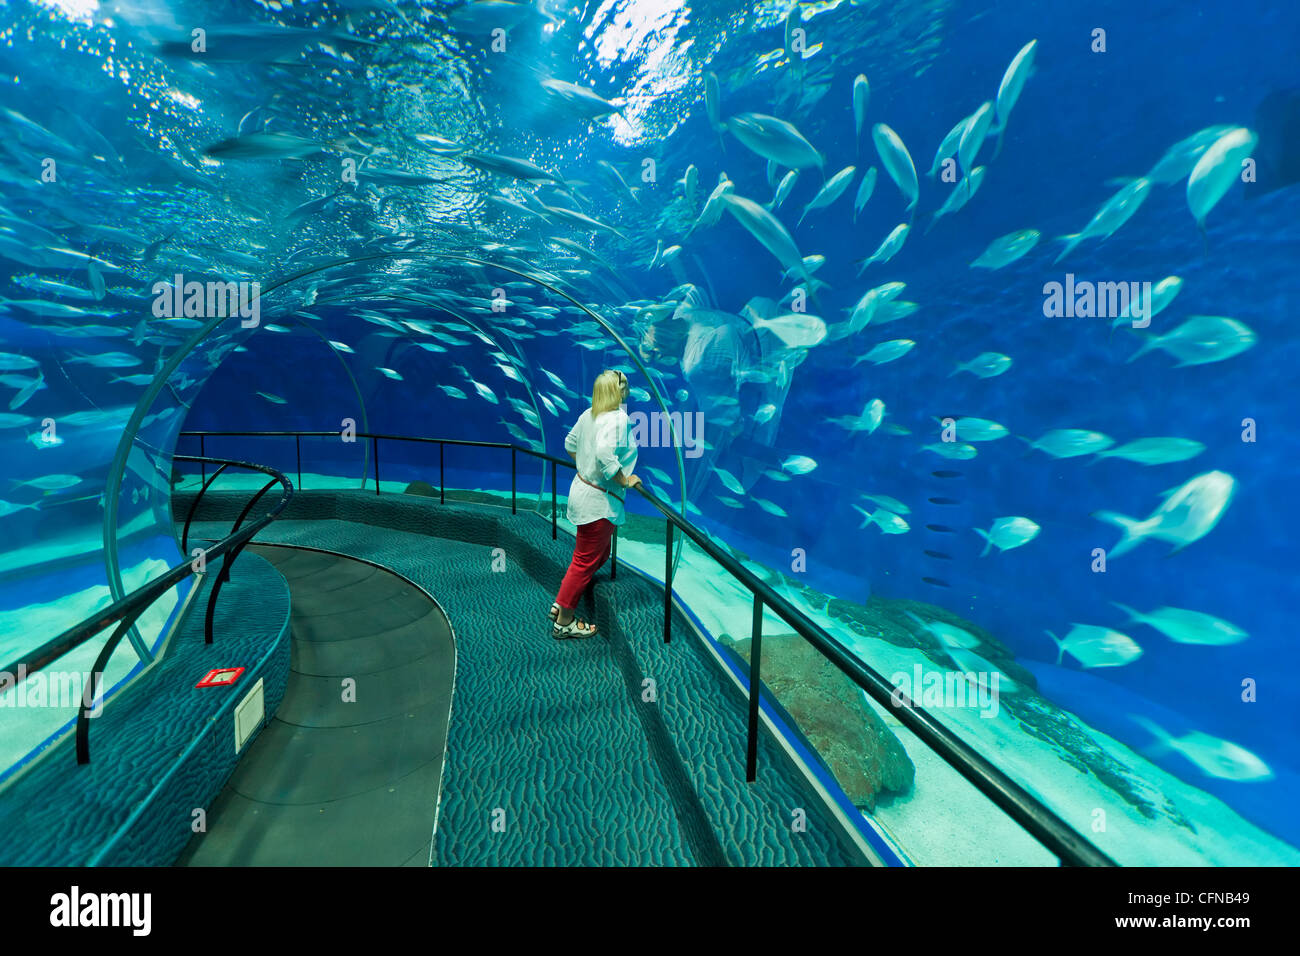 Woman at Ocean Aquarium, Shanghai, Chine, Asie Banque D'Images